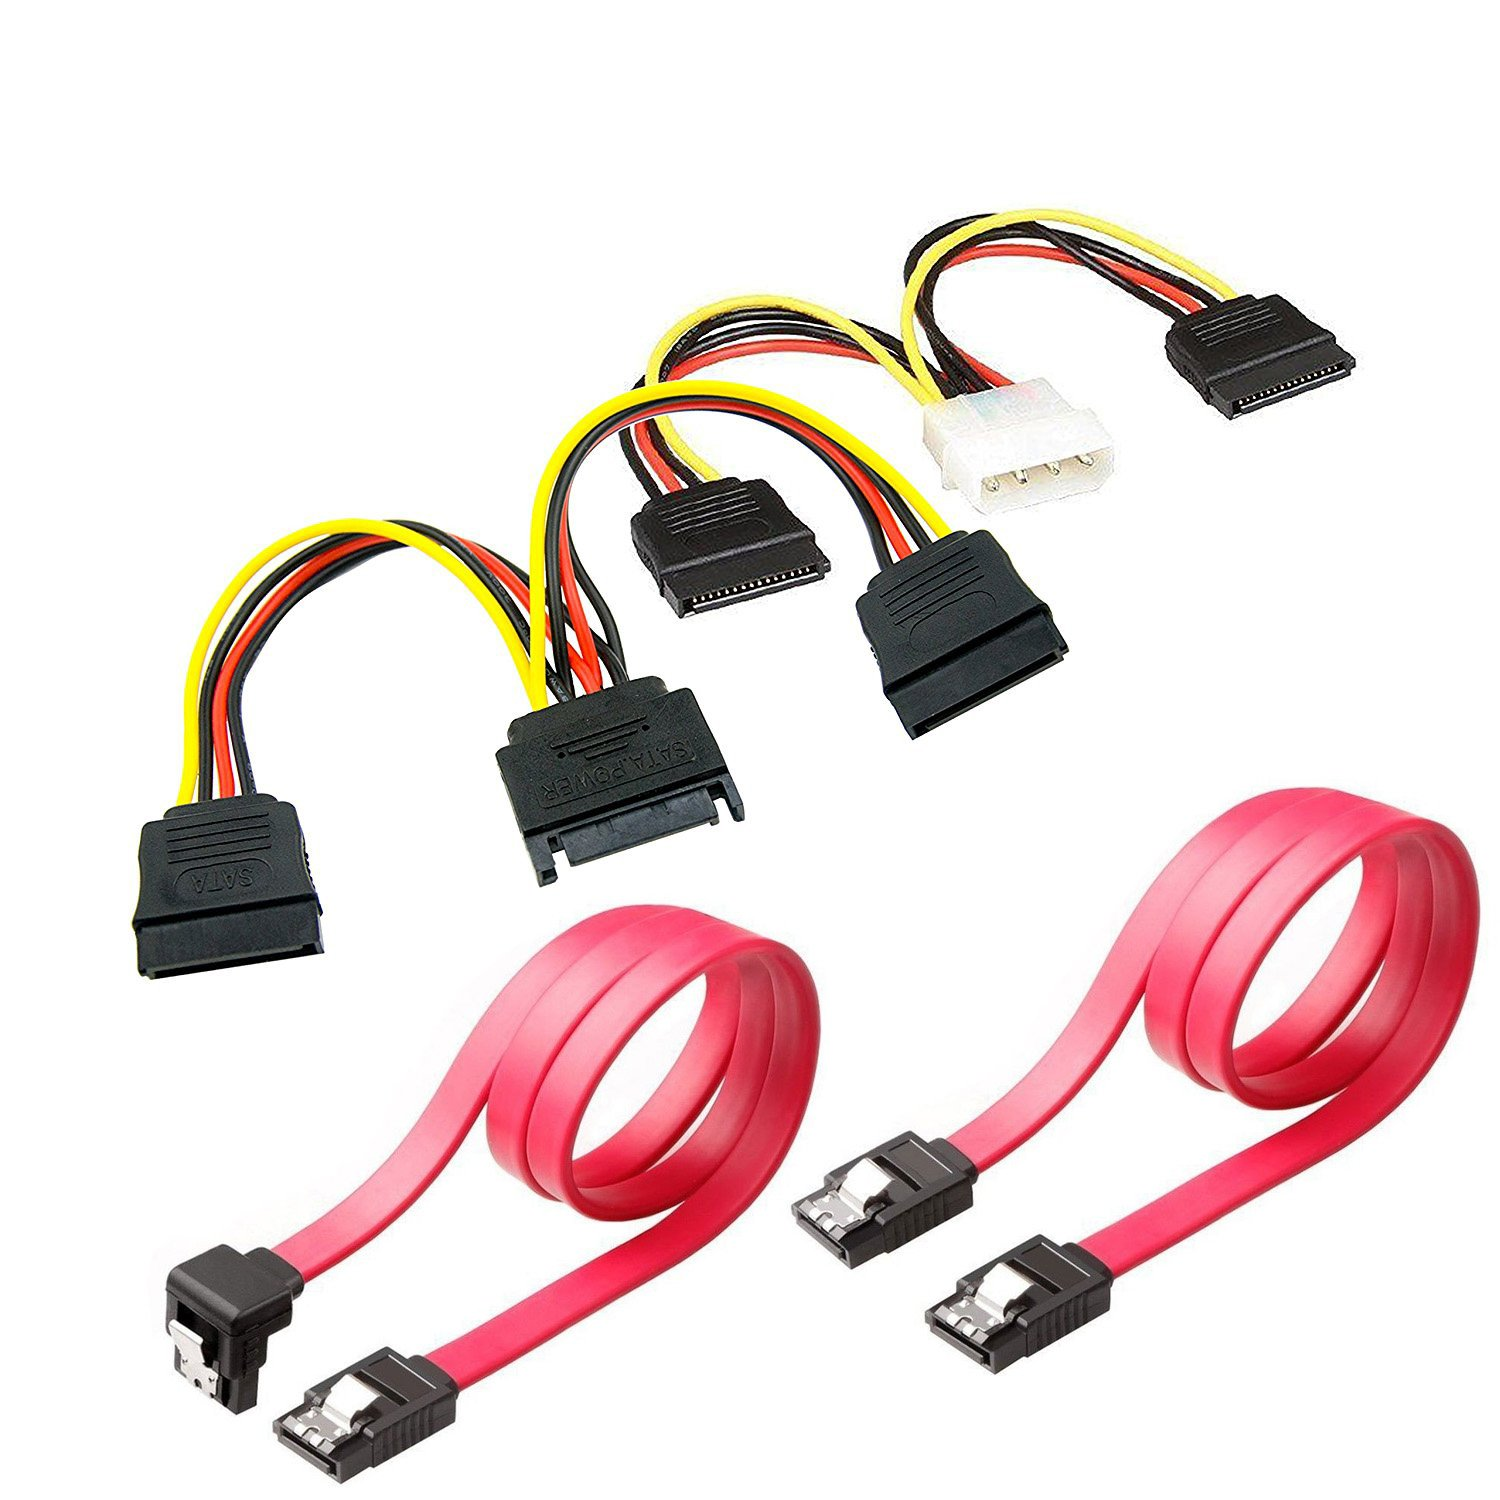 SSD/SATA III Hard Drive Connection Cables (1x Molex to Dual 15 Pin SATA Power Splitter Cable, 1 x 15 Pin to Dual 15 Pin SATA Power Splitter Cable, 2X SATA Data Cables) (2xPower Cable+2X Data Cables) TOTOVIN